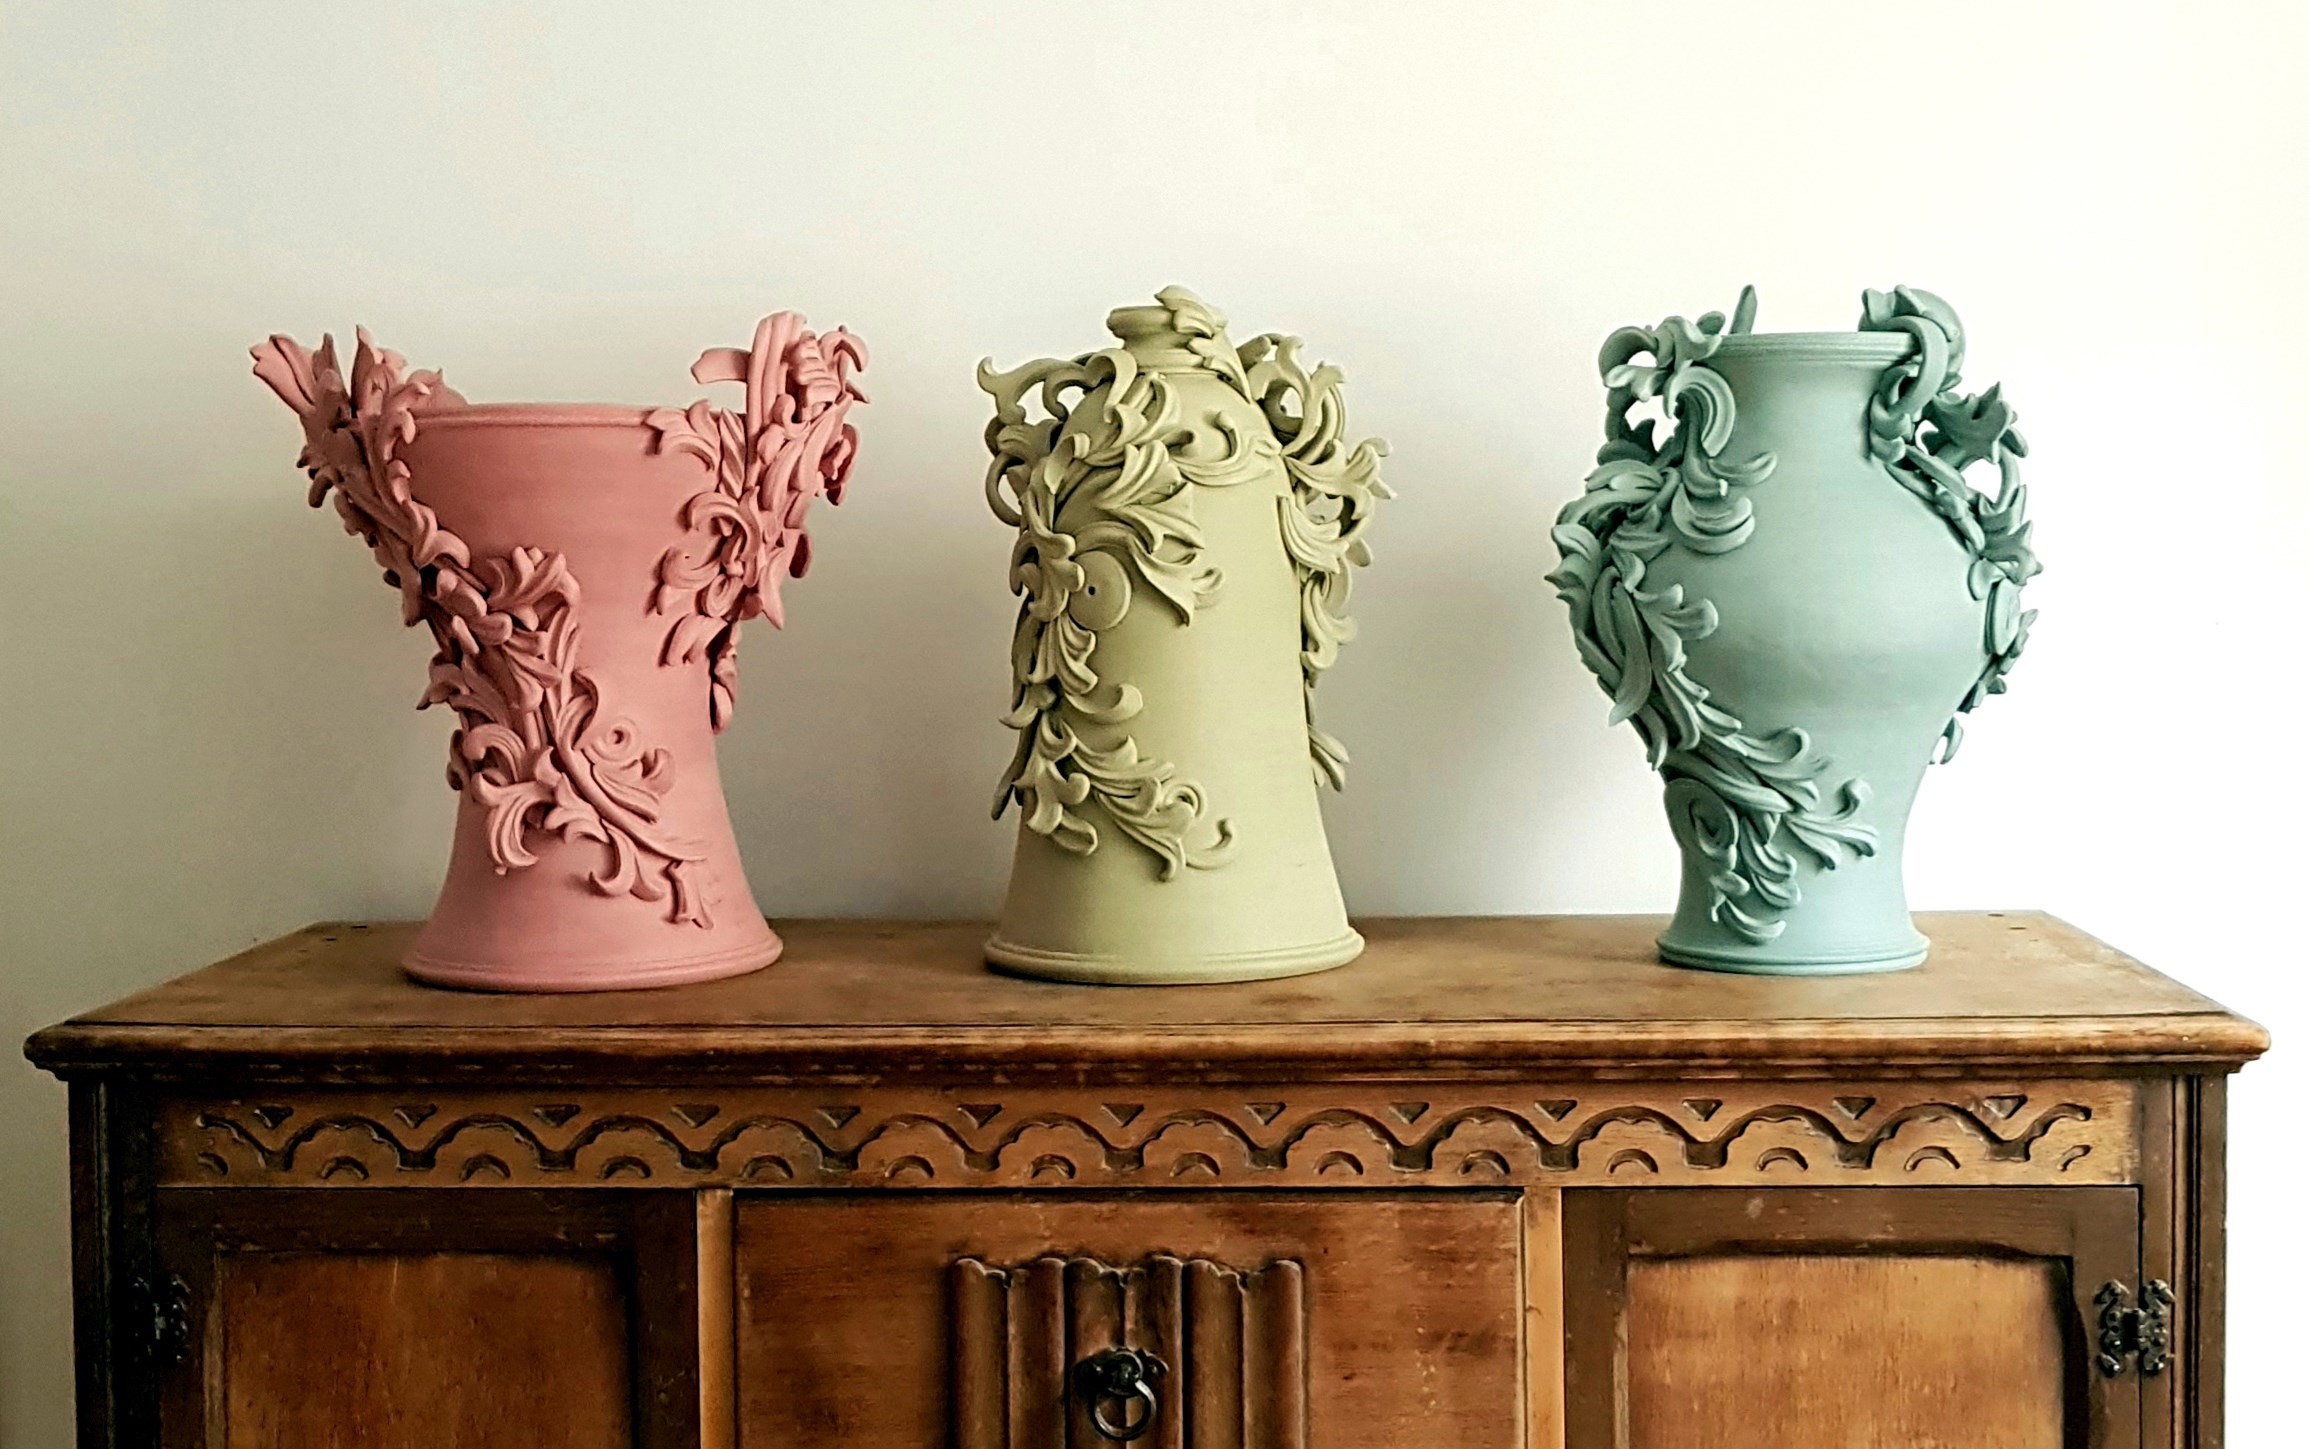 clay vase coloured stoneware sculptures in pink, yellow and turquoise